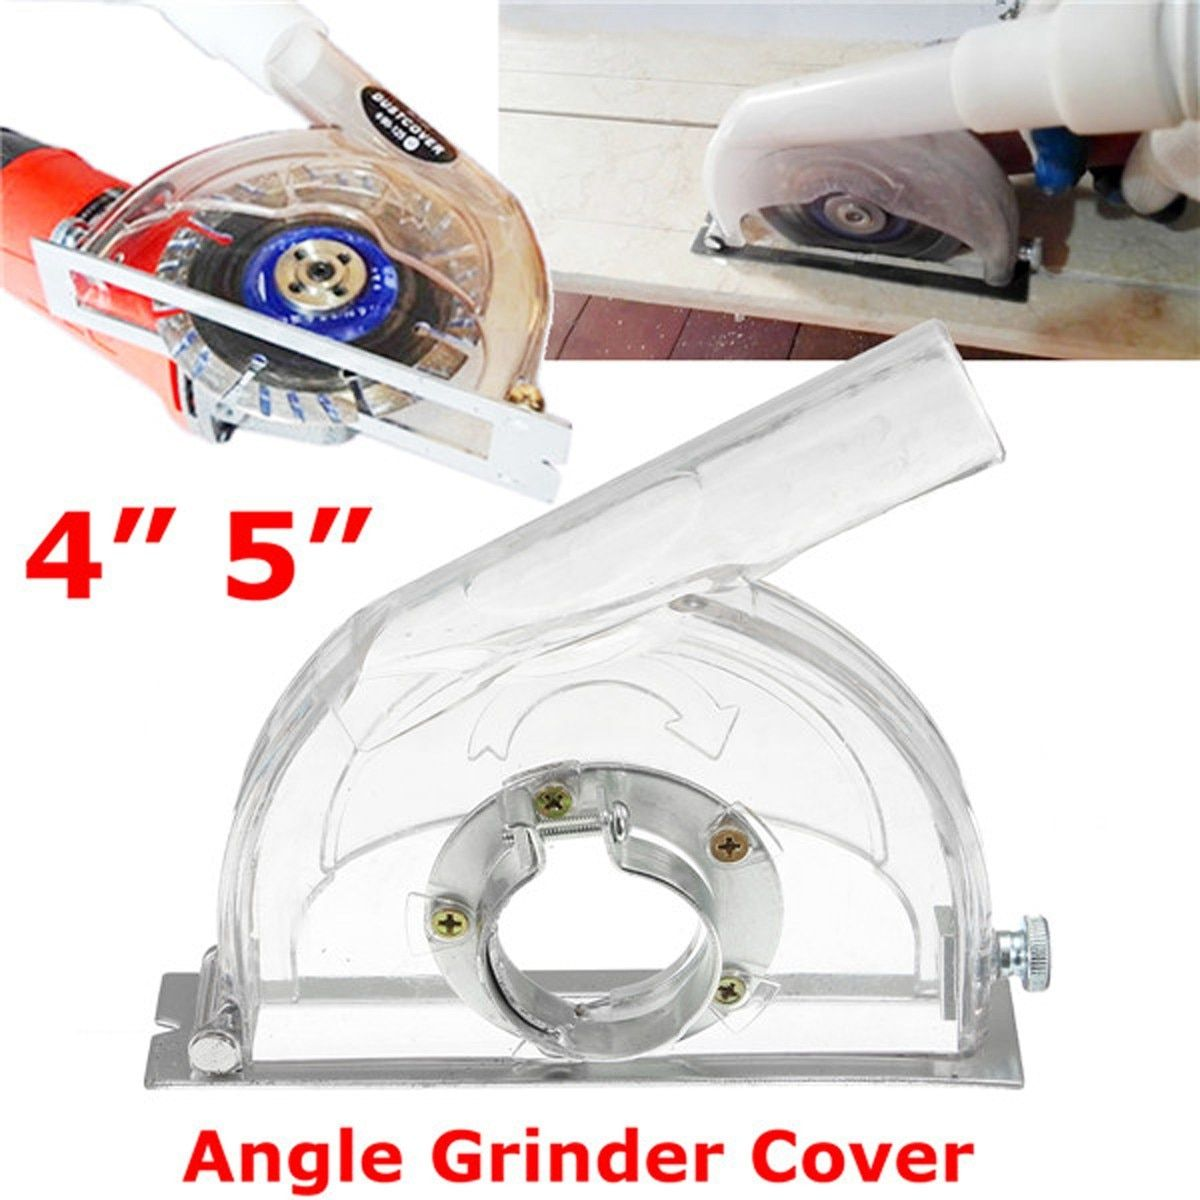 Convertible Clear Cutting Transparent Grinding Dust Cover For 45 Angle Grinder & 3/4/5